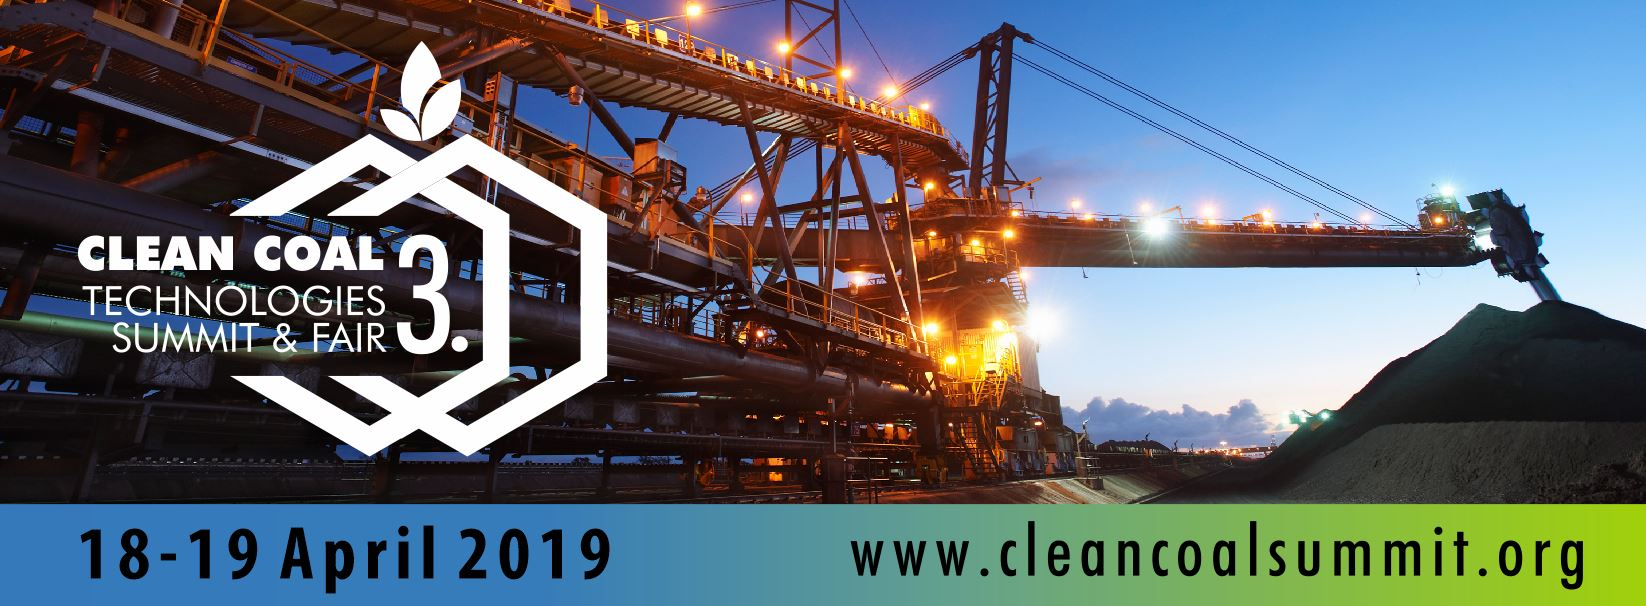 International Clean Coal Technologies Summit and Fair. B2B Opportunities with Turkish Thermal Power Plant Operators. (2019-04-18)